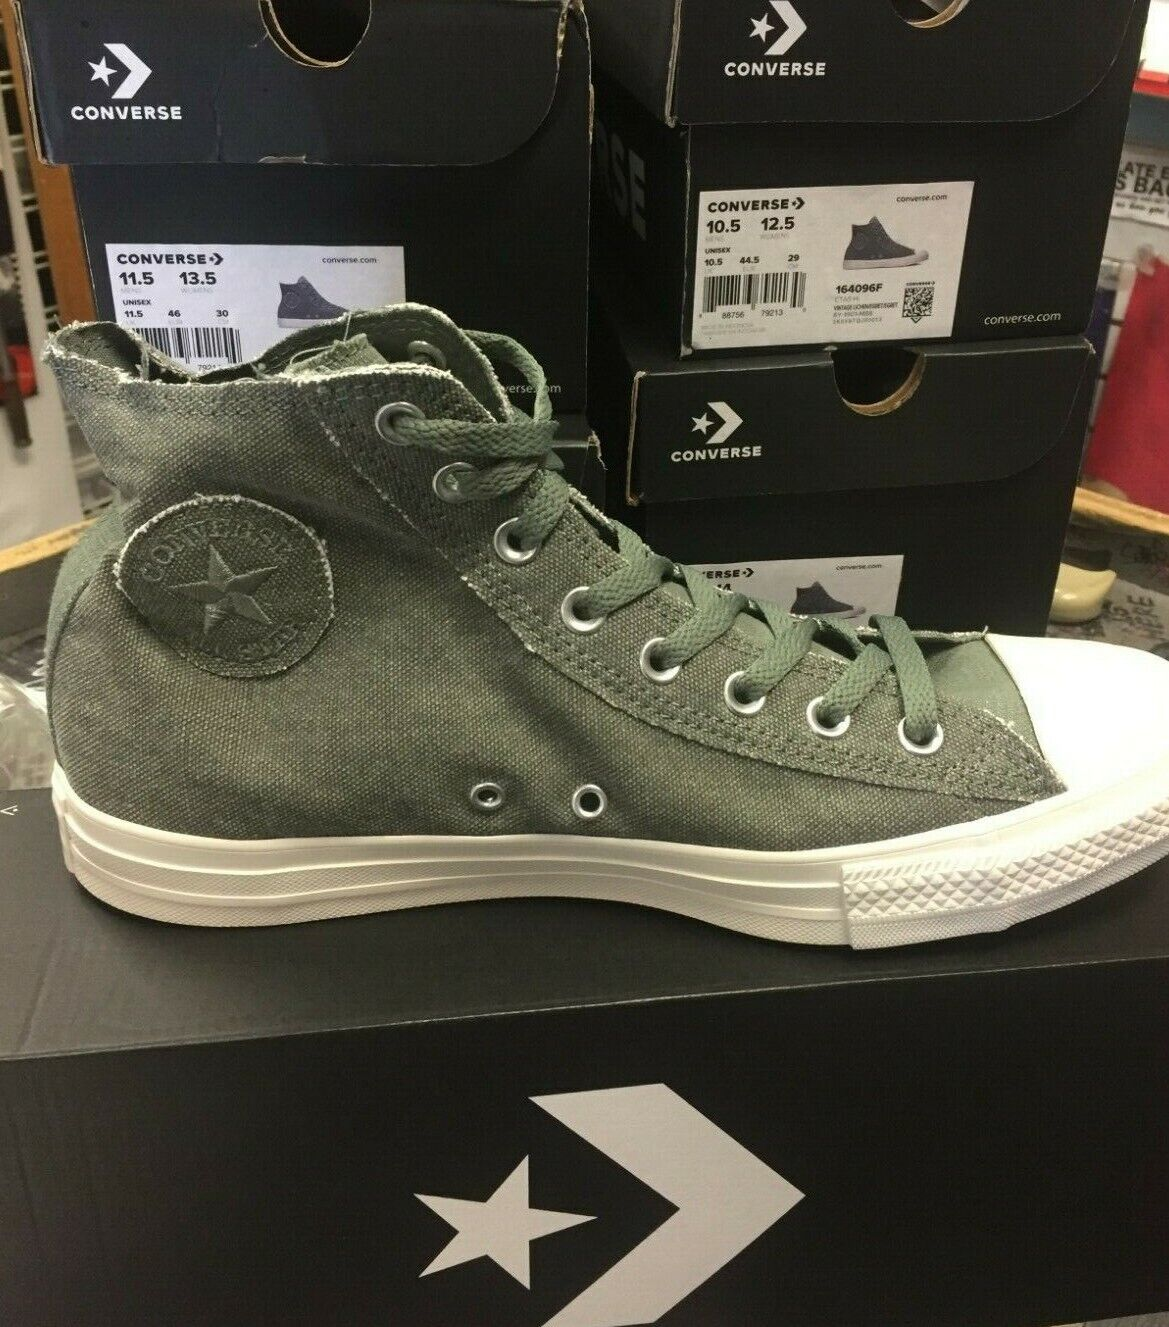 CONVERSE CHUCK TAYLOR ALL STAR HI VINTAGE LICHEN  GREY MENS 10